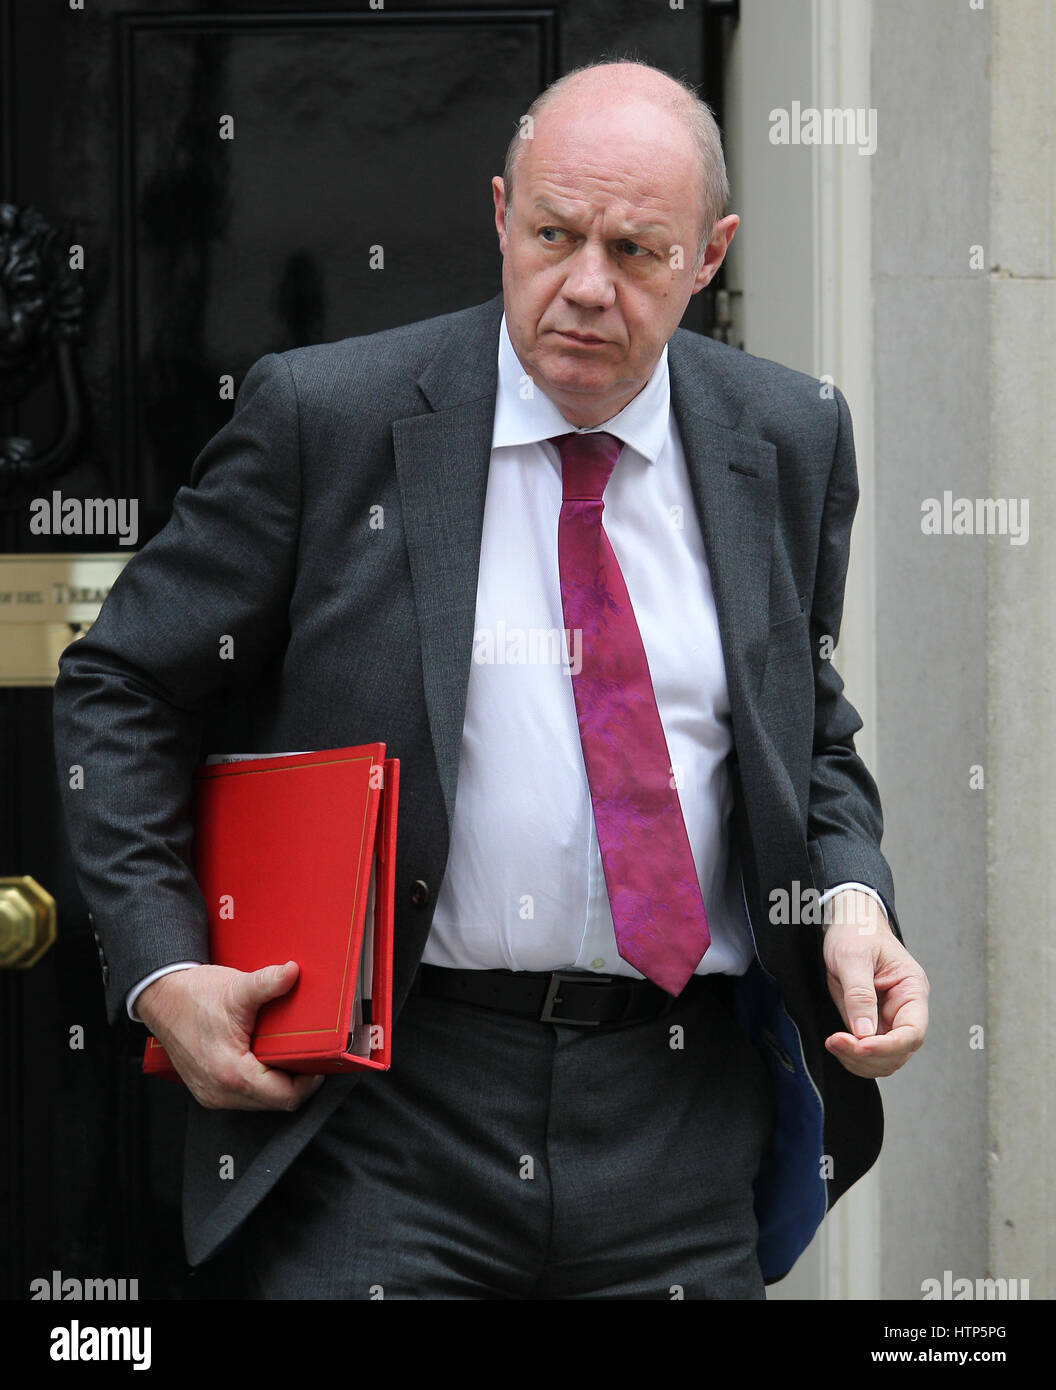 London, UK. 14th Mar, 2017. London, Mar 14, 2017. Damian Green MP Secretary of State for Work and Pensions seen - Stock Image